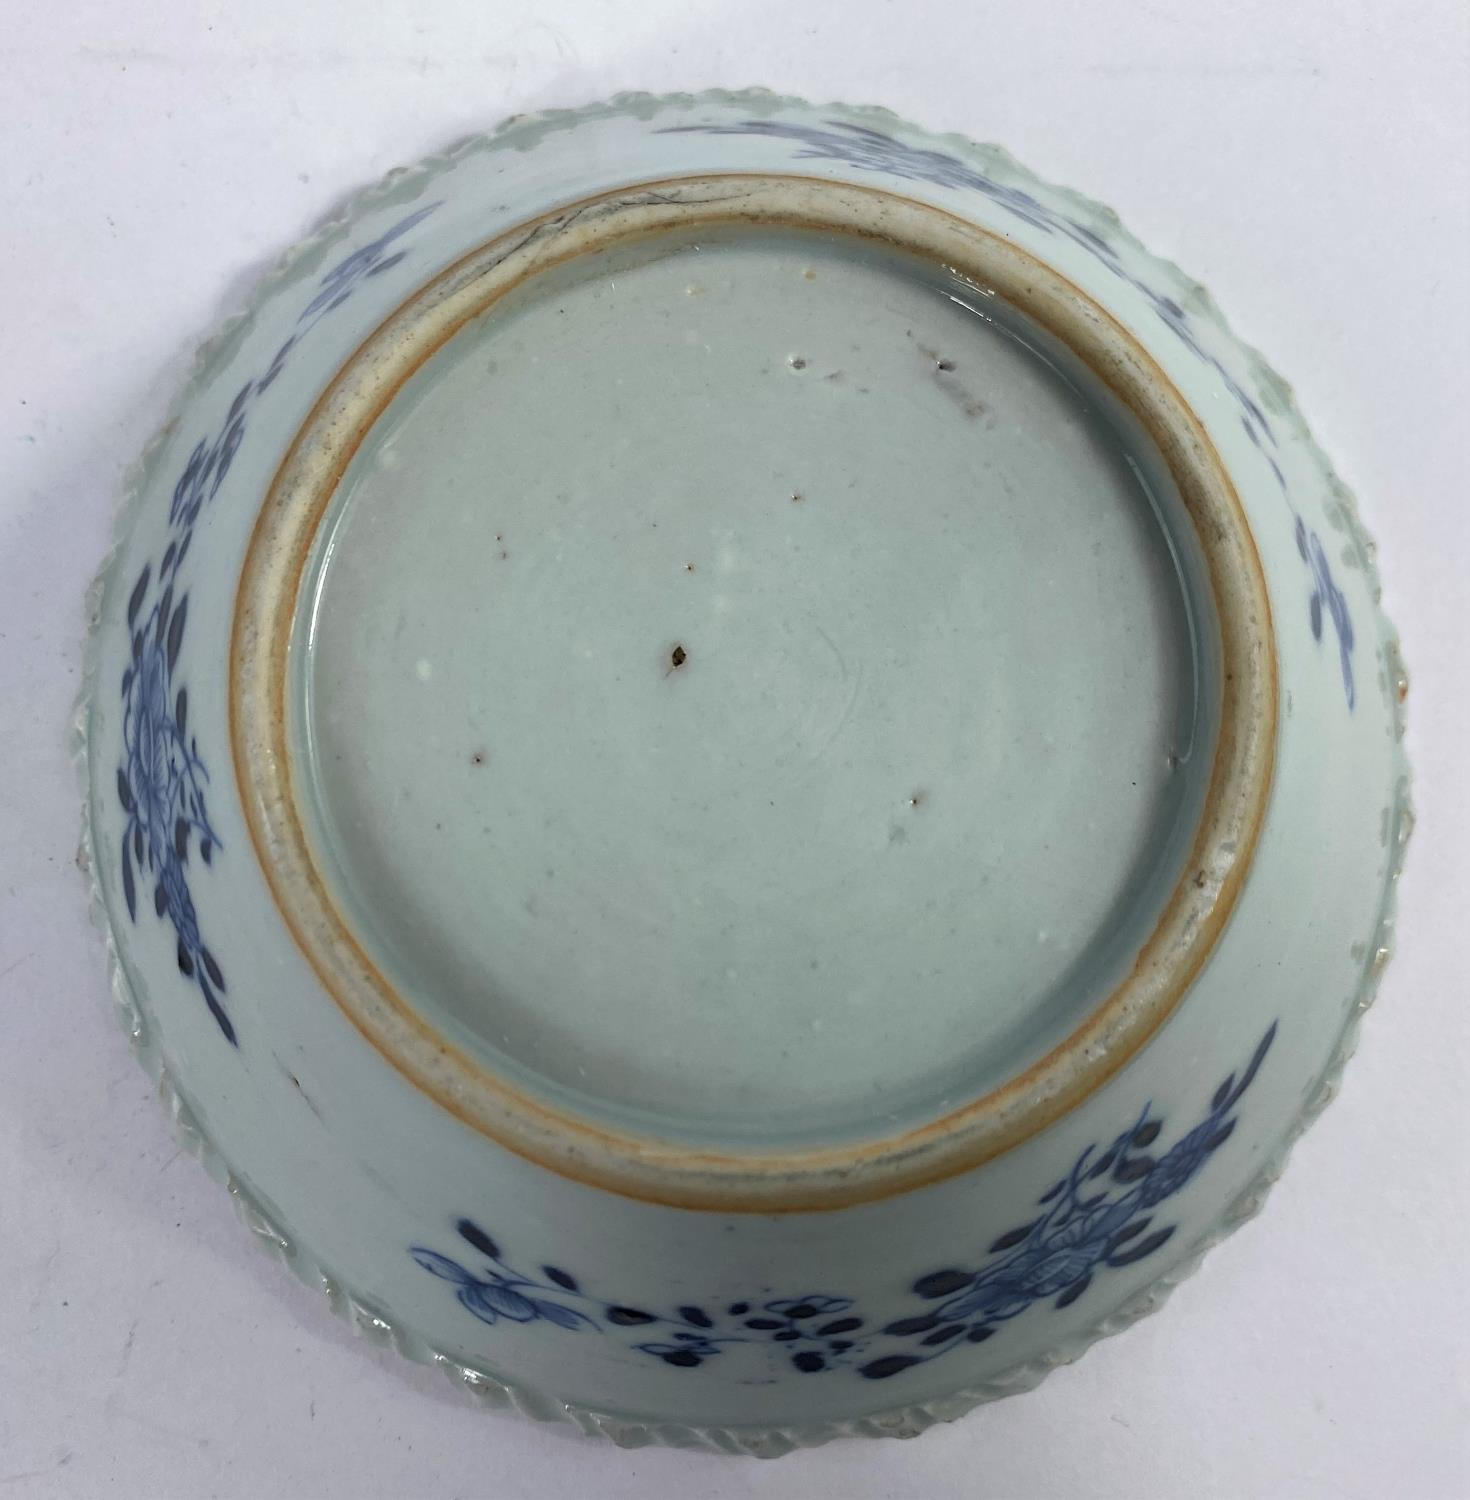 An 18th century Chinese blue and white porcelain bowl with pie crust rim decorated with antiques and - Image 3 of 5